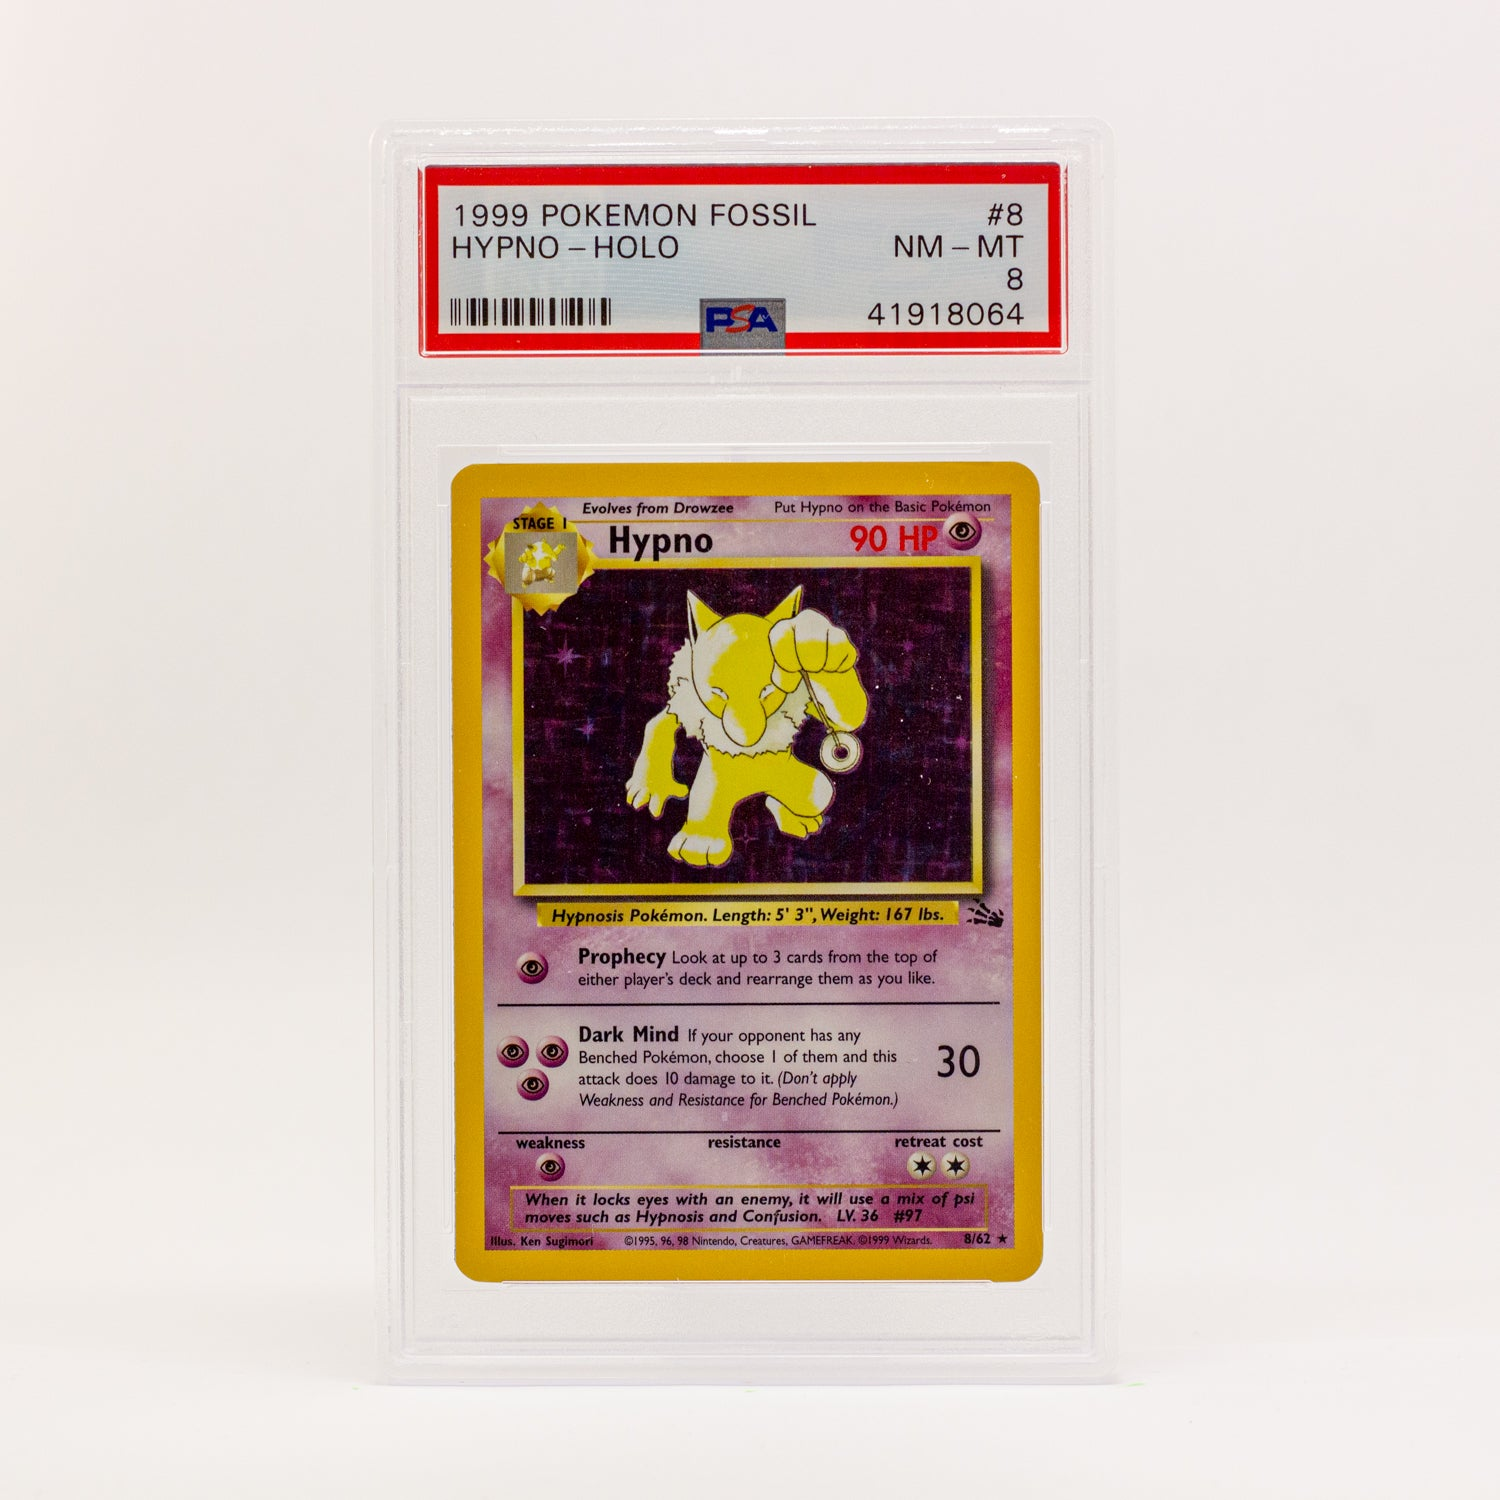 1999 POKEMON FOSSIL HYPNO HOLO - POP KULCHA COLLECT - Graded cards, sealed products, toys and video games